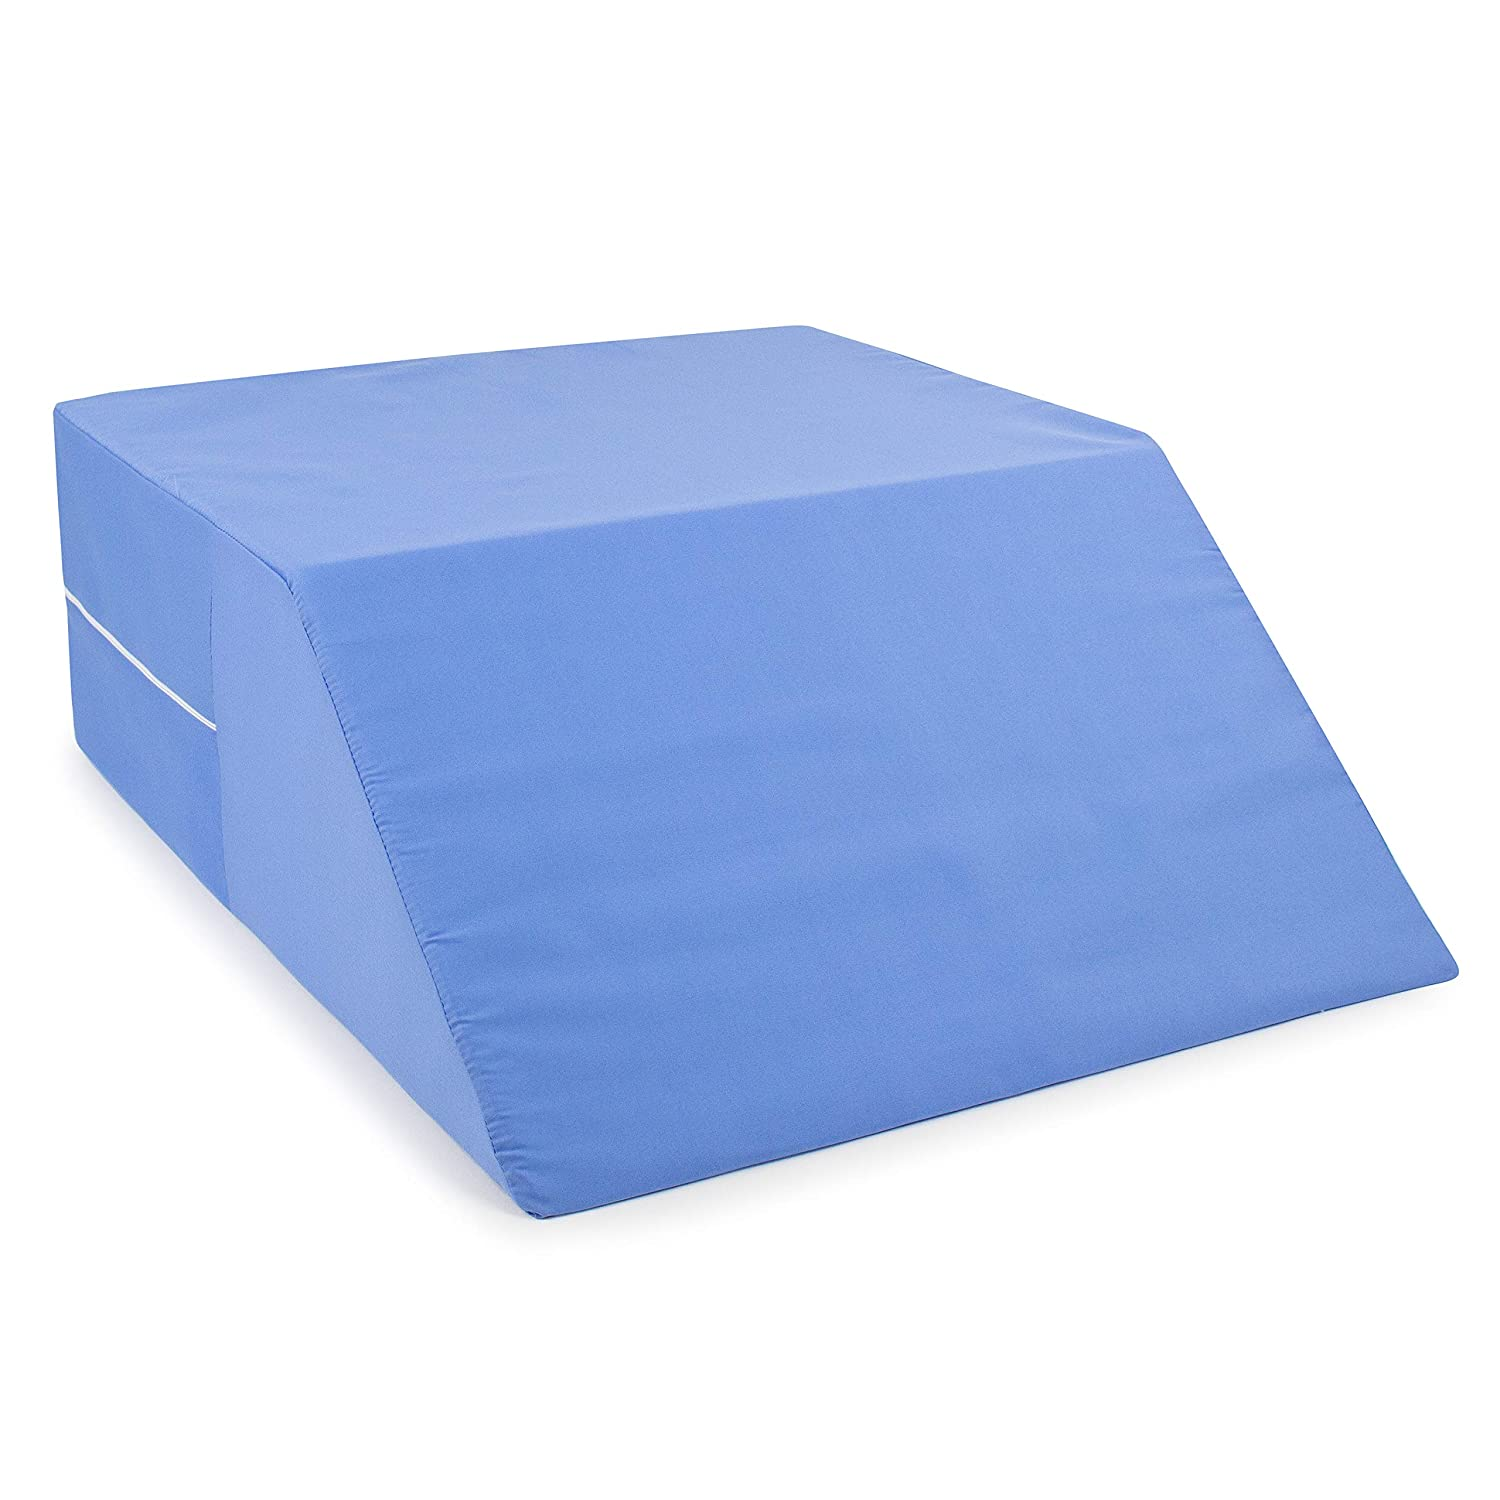 Dmi Ortho Bed Wedge Elevated Leg Pillow Supportive Foam